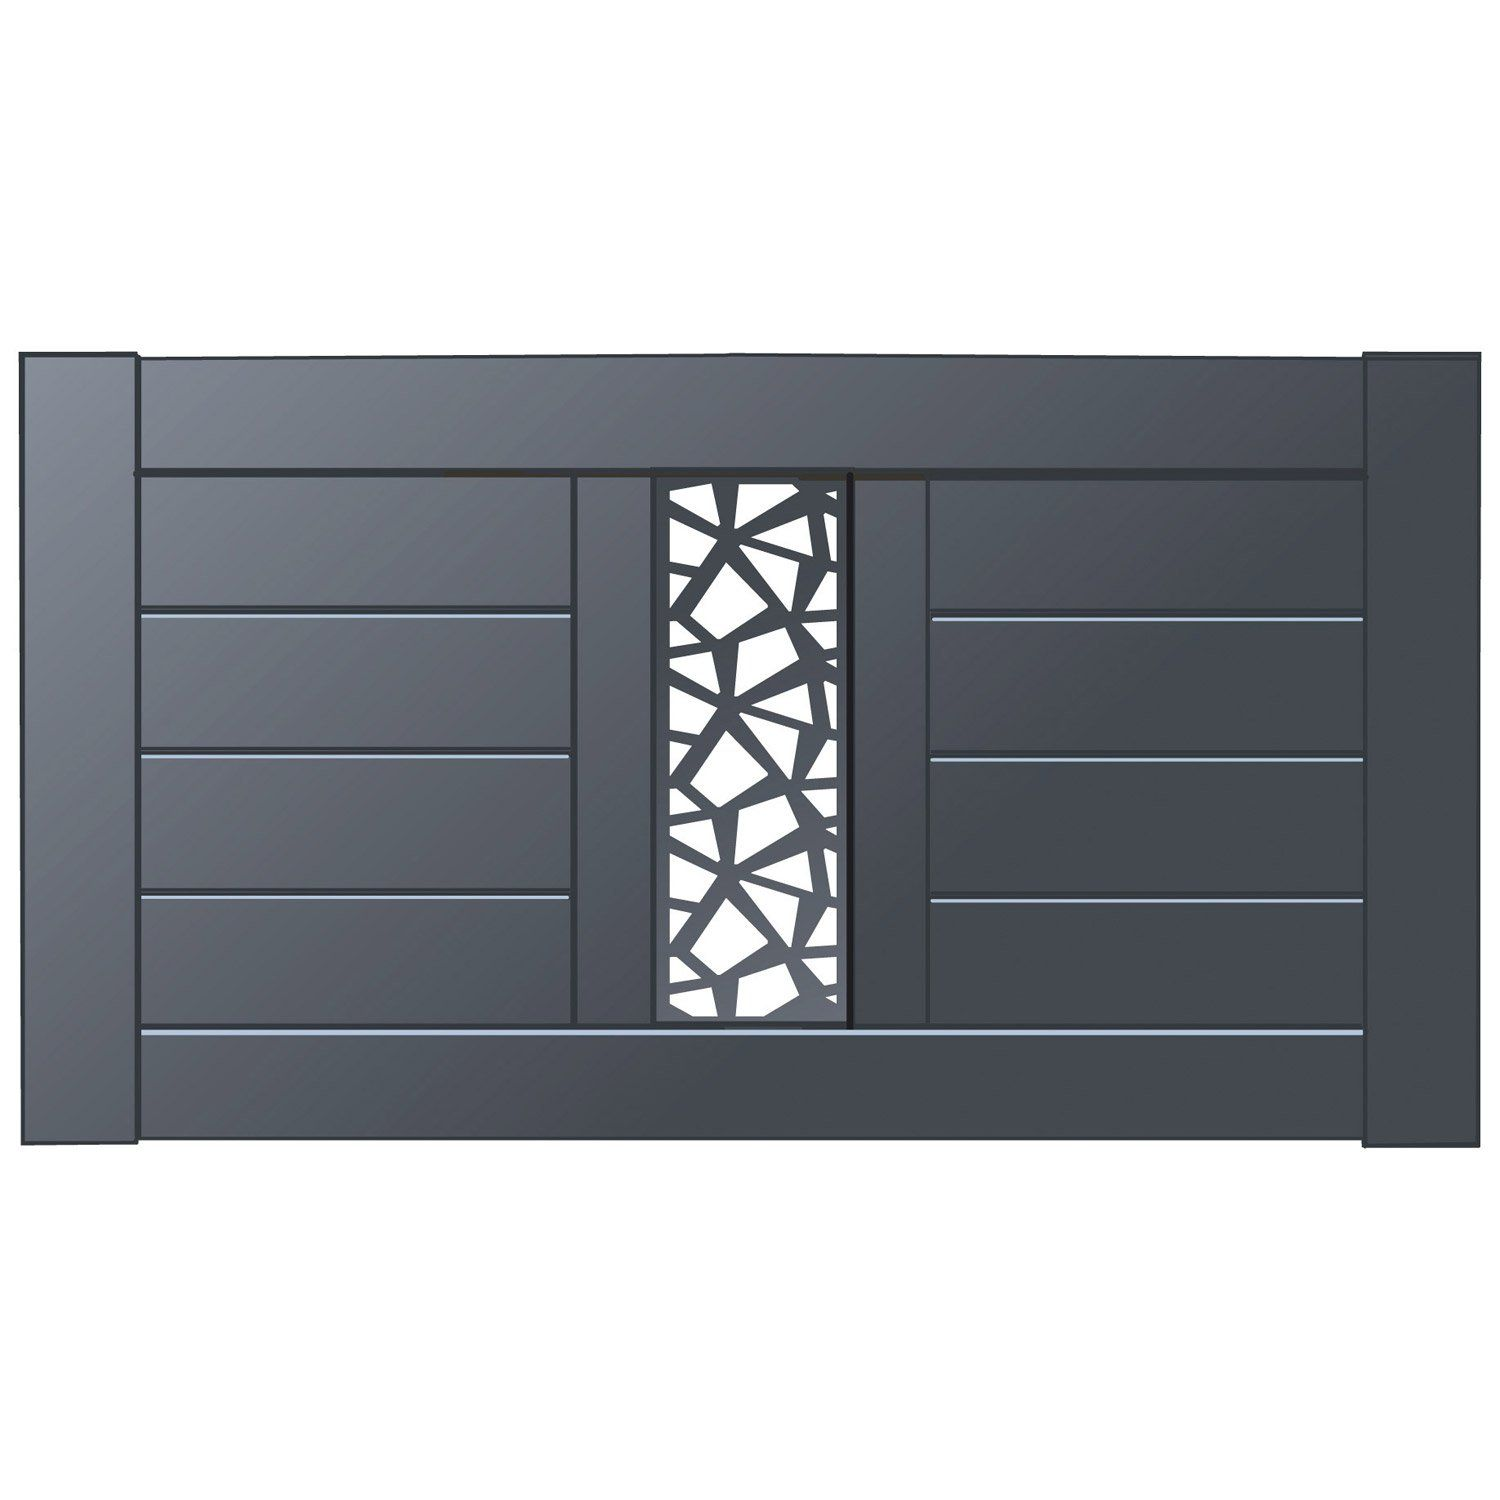 Matiere Principale Aluminium Gate Design Door Gate Design House Gate Design